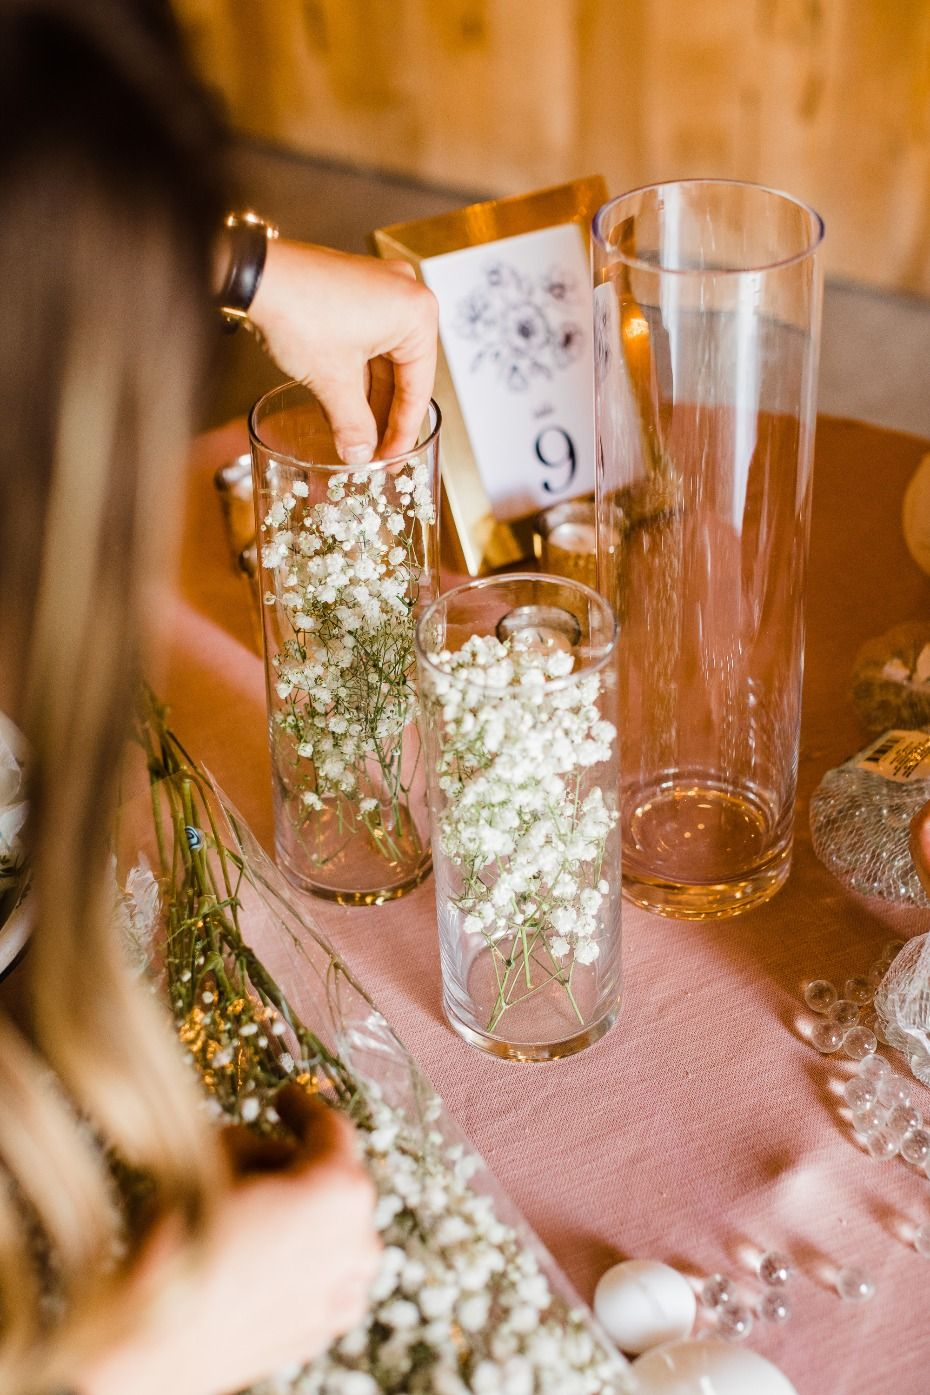 DIY wedding reception centerpieces baby's breath#diy #weddingplanning #receptiondecor #diyreception #reception #indoorwedding #outdoorwedding #budget #weddingbudget #diyflowers #fiftyflowers #ad